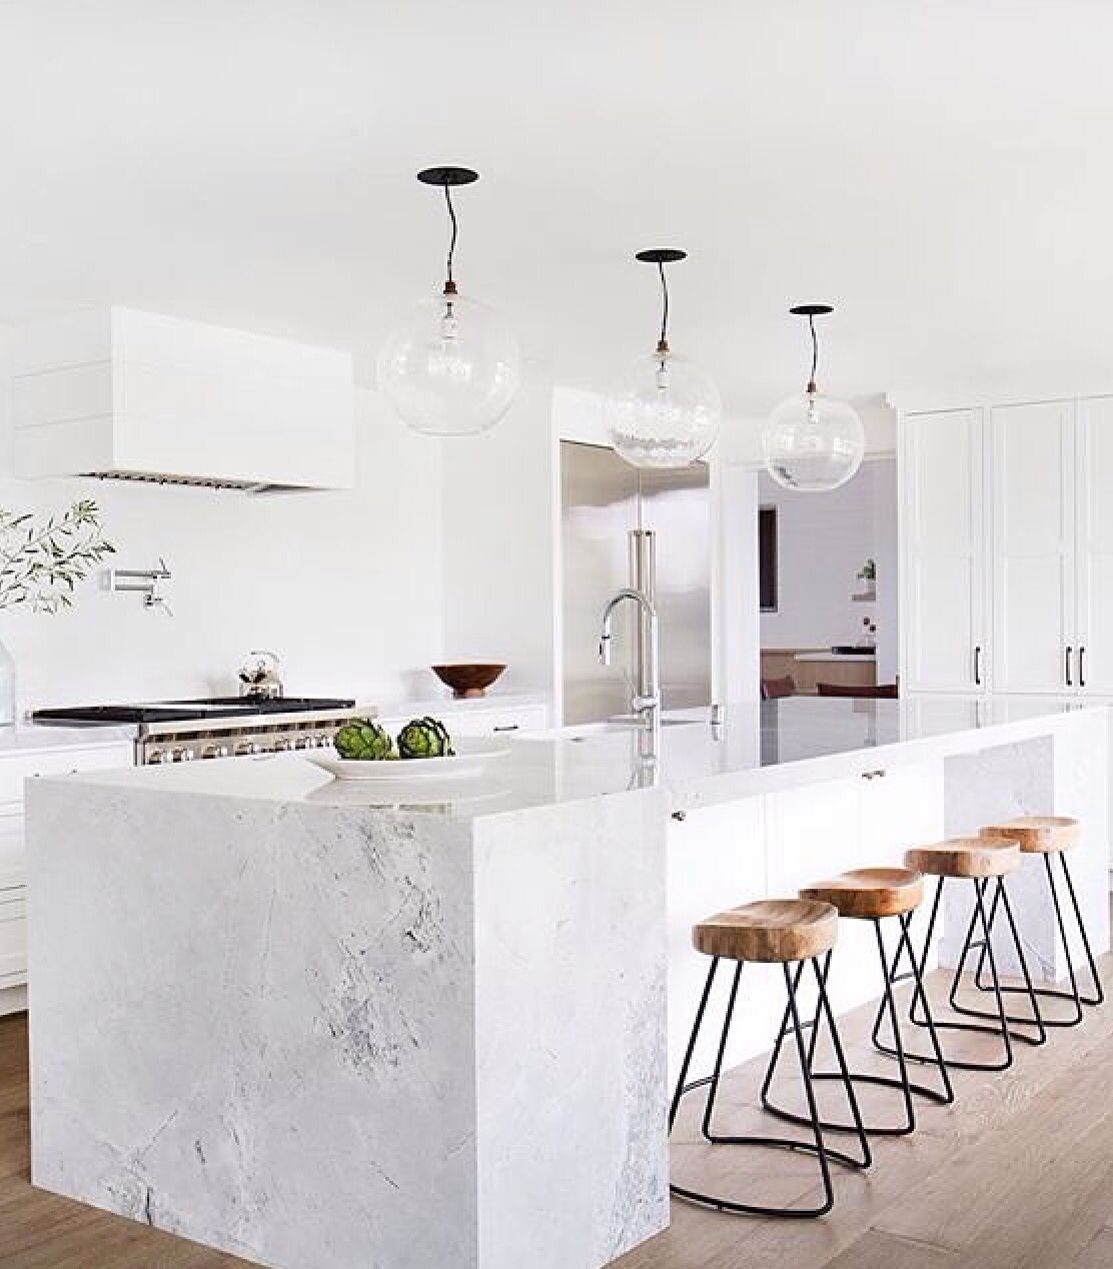 Modern Kitchen Bar Stools Kitchen Islands With Table: Bright White Modern Kitchen Https://emfurn.com/collections